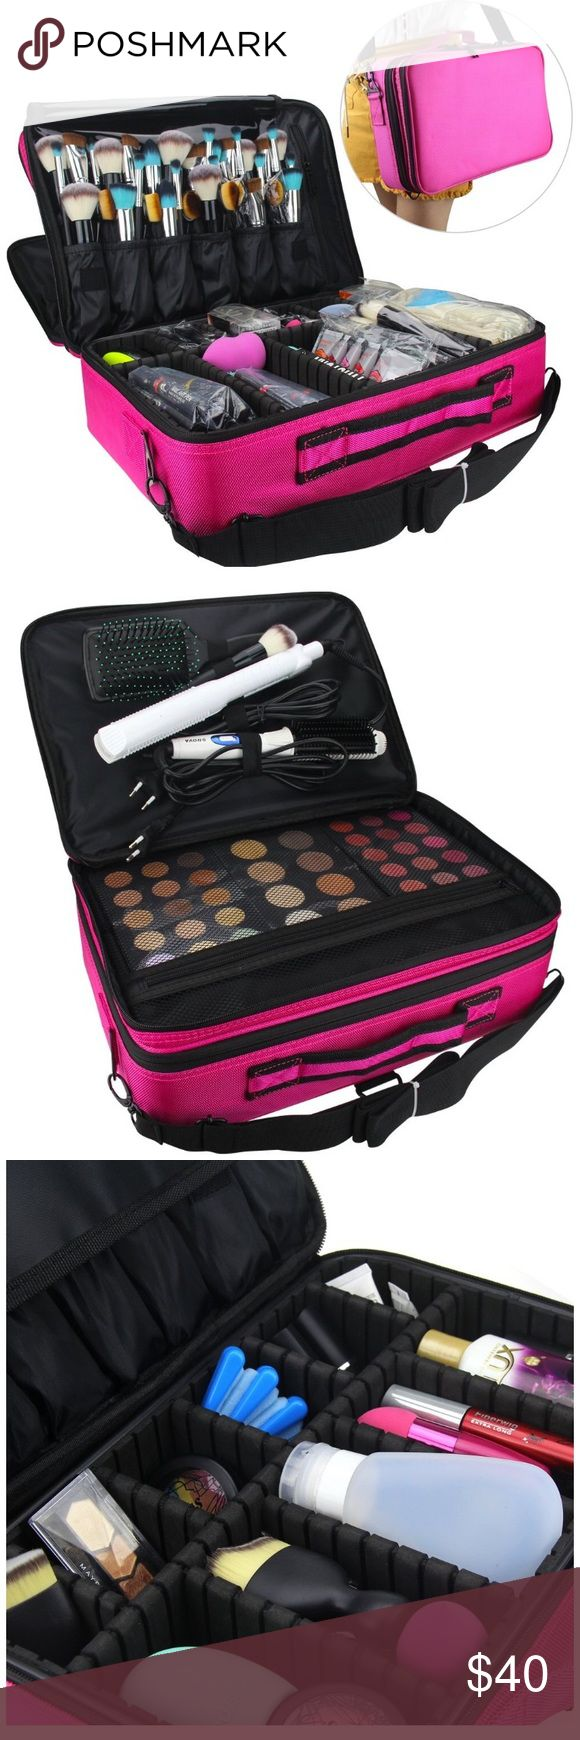 Makeup 3 Layer Cosmetic Case with Shoulder Strap The Makeup Train Case is a and compact makeup case to ensure the safety and organization of your cosmetics and tools This case can easily fit our Perfect Canvas Convention, Eye Shadow Singles, and LL Creams The case design is so versatile that it can also be used to store nail art products, our UV dryers and fashion accessories. Its uses are limited by your imagination This is a great buy for tweens and makeup novices. Bags Cosmetic Bags…